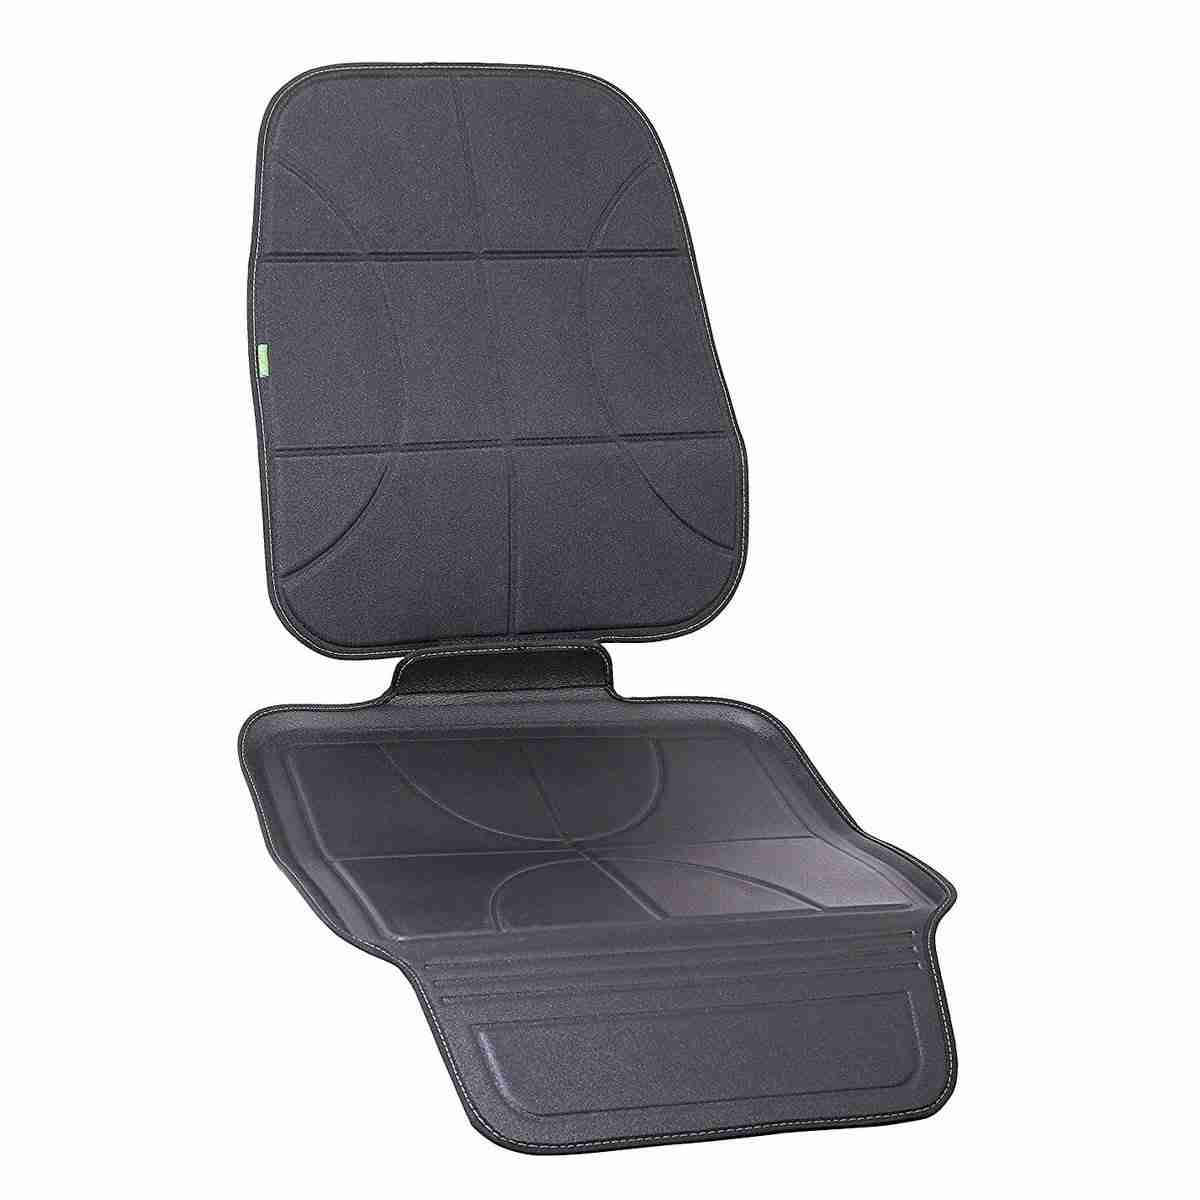 Venture heavy duty car seat protector